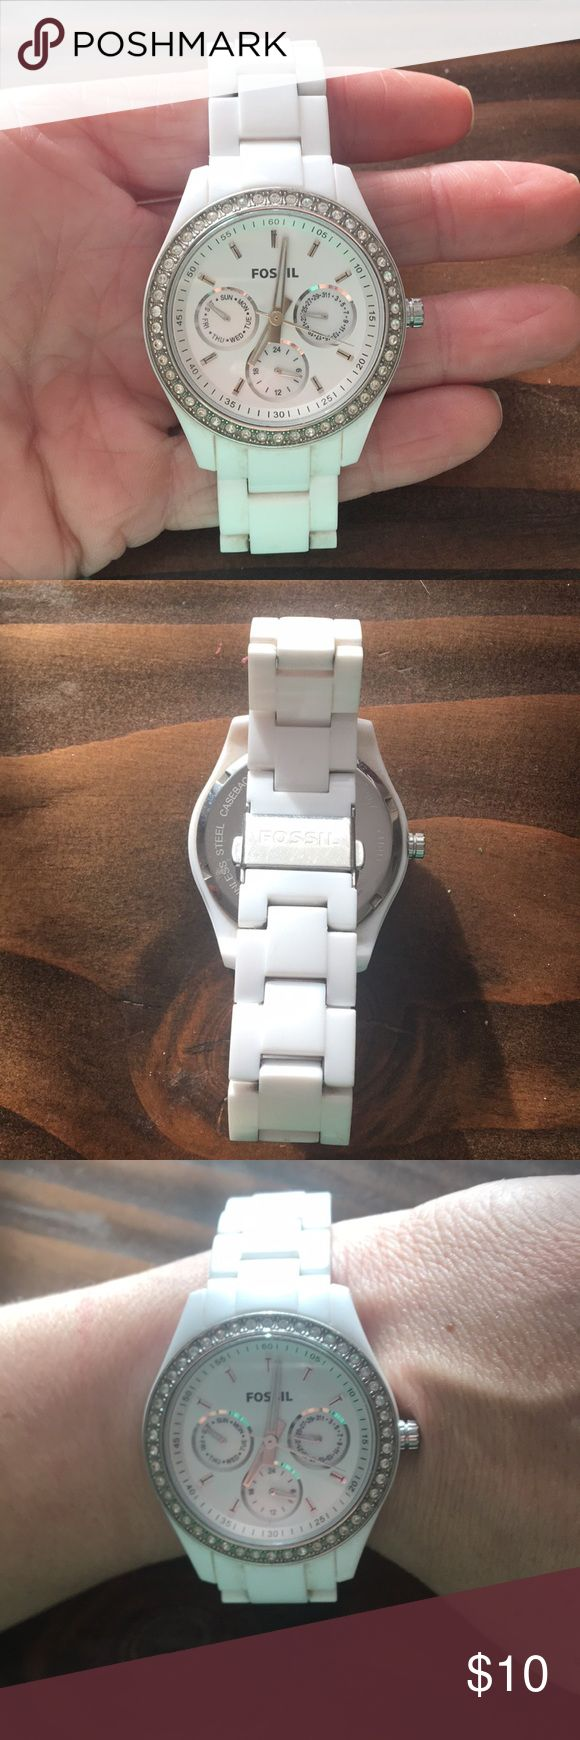 Fossil watch White plastic fossil watch. Works perfectly but needs a new battery. Rhinestones around face Of watch Fossil Accessories Watches